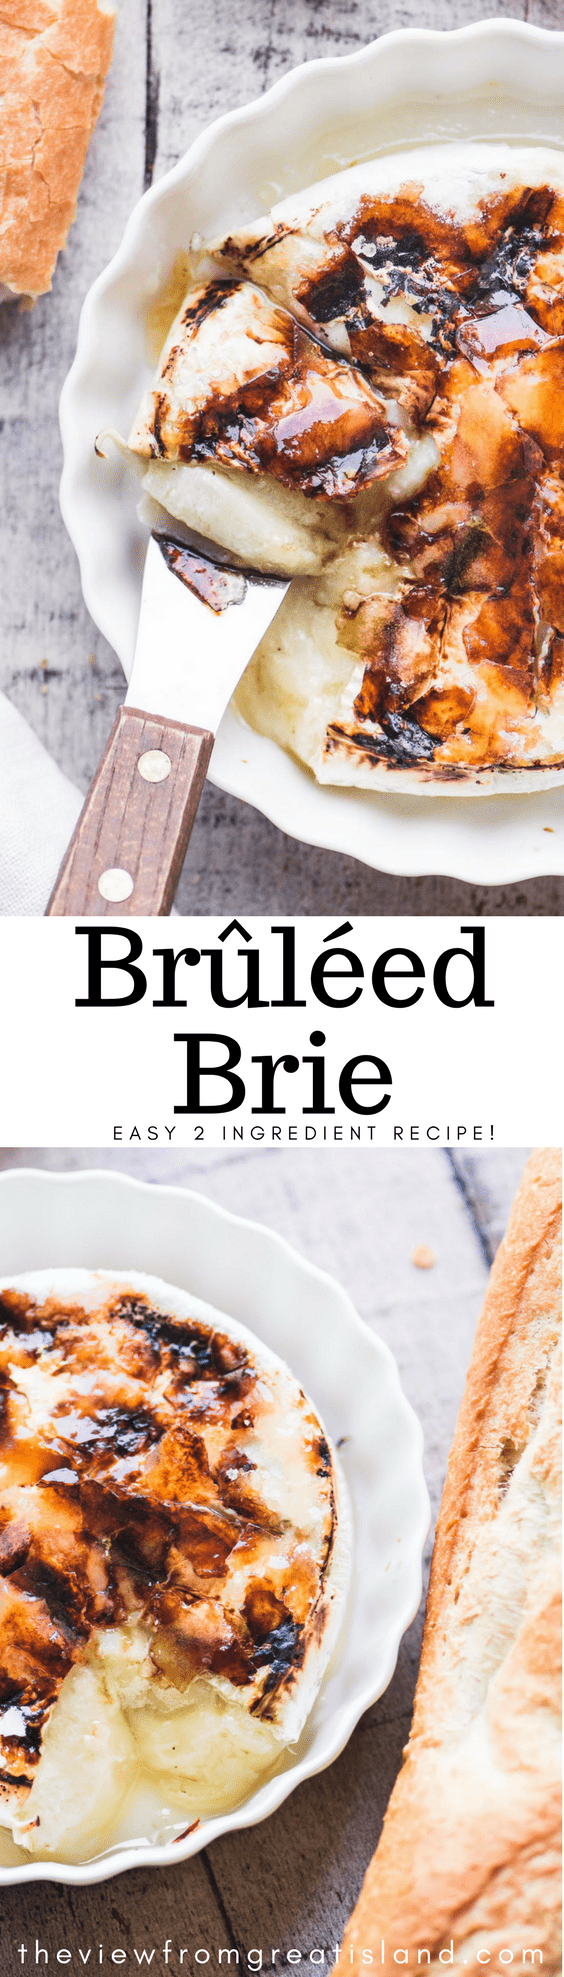 Brûléed Brie ~ this is your wow appetizer for the season ~ you only need a wheel of Brie and some sugar to do this, and the results speak for themselves.  #bakedbrie #bakedcheese #appetizer #holidayappetizer #easyholidayappetizer #thanksgivingappetizer #Christmasappetizer #brulee #caramel #bestbakedbrie #amazingappetizer #bakedbrierecipe